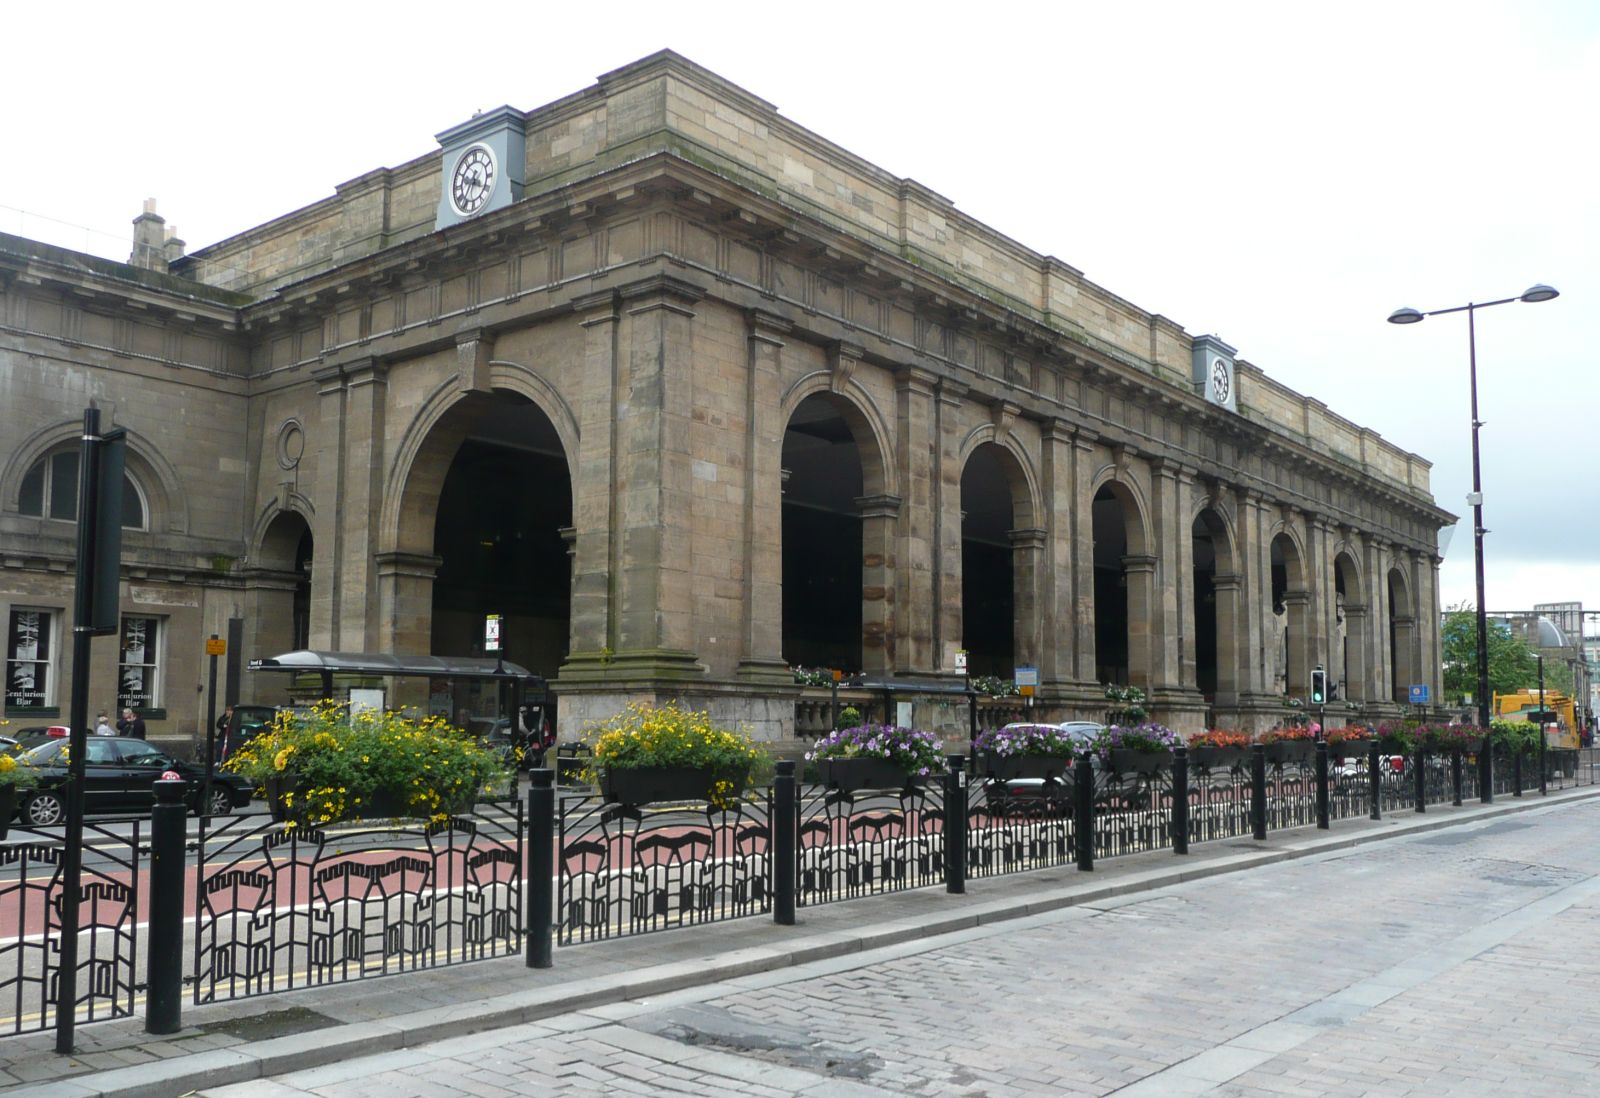 Photograph of Newcastle Central Station